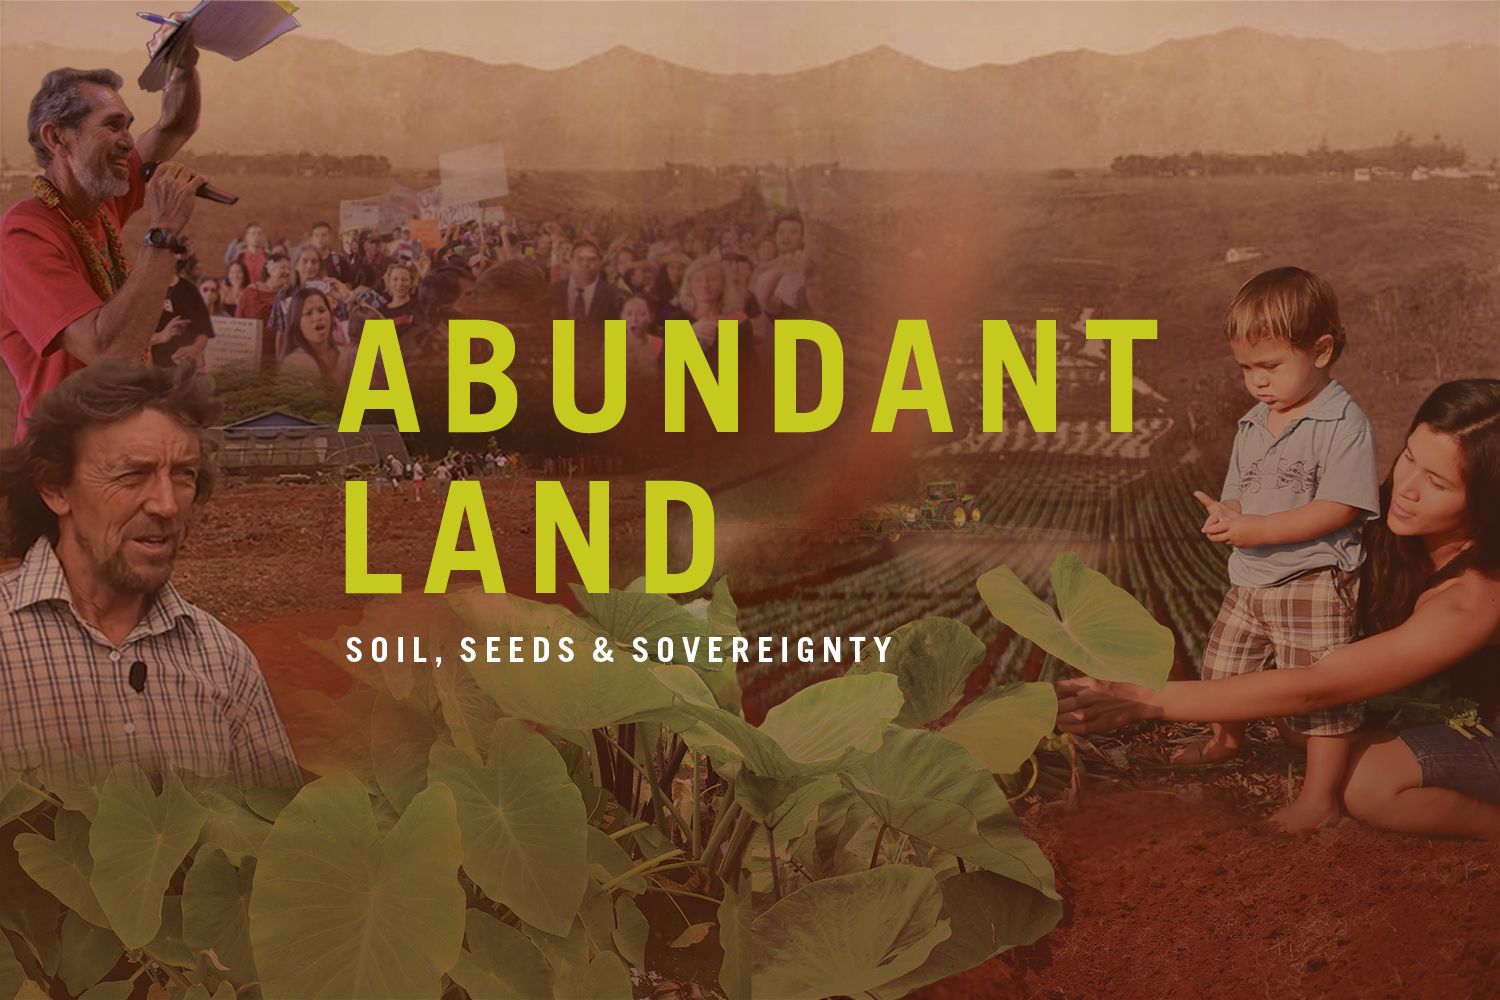 Film Screening: Abundant Land: Soil, Seeds and Sovereignty - Followed by Q&A with Director